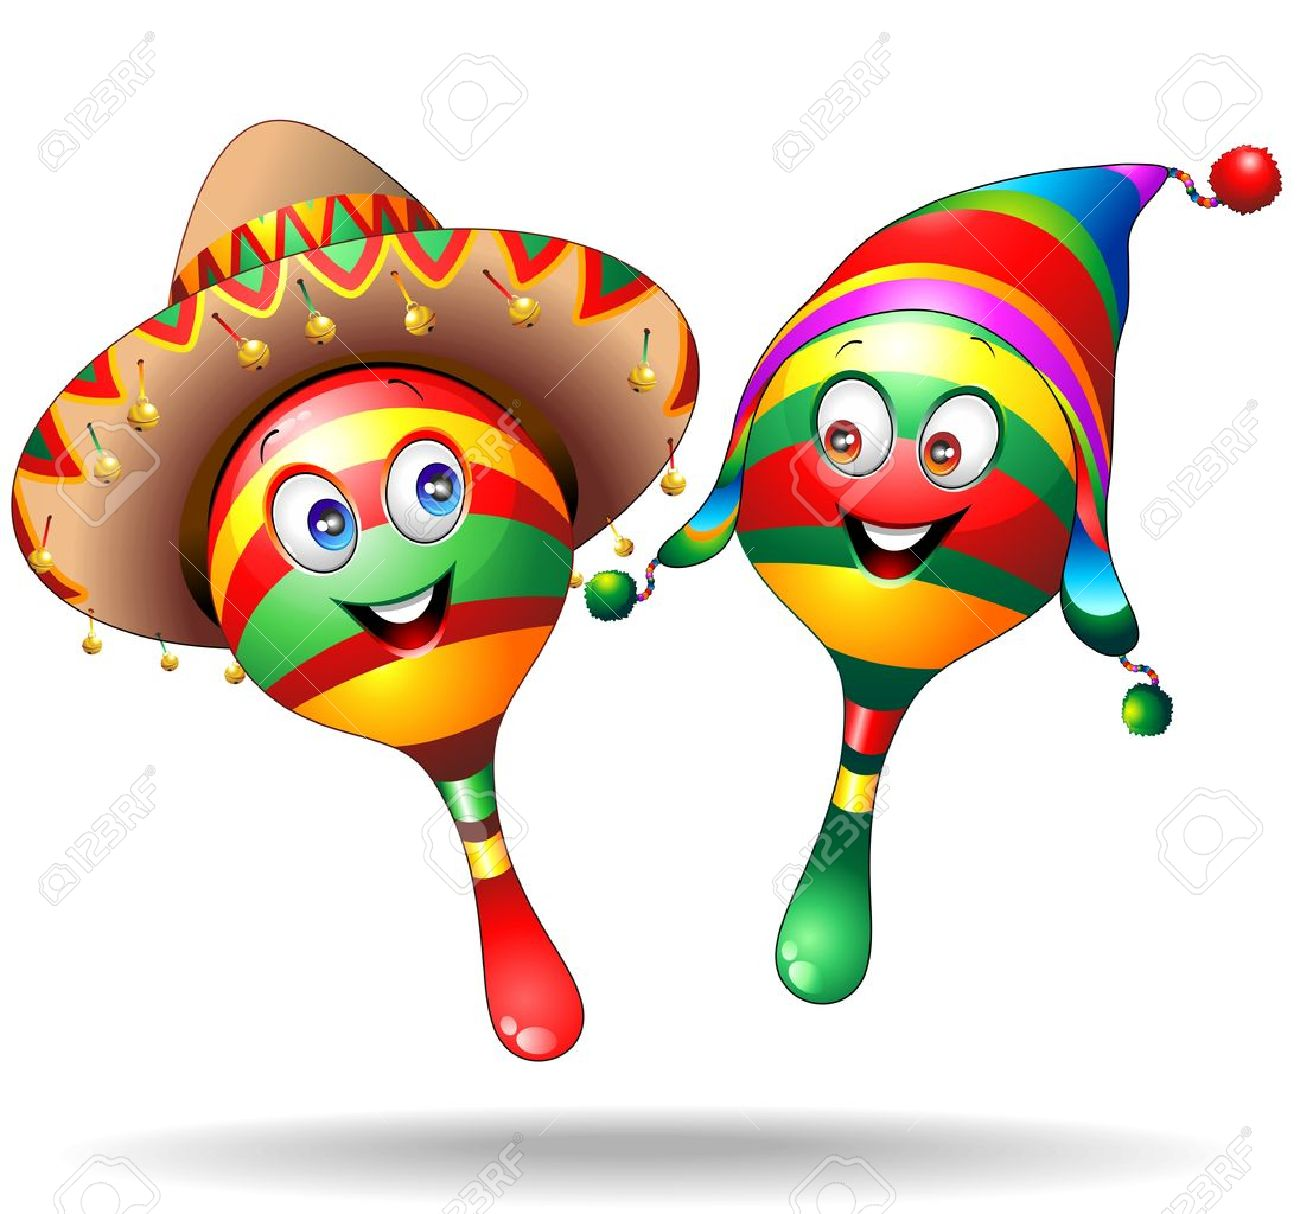 Mexican Party Decorations Clipart